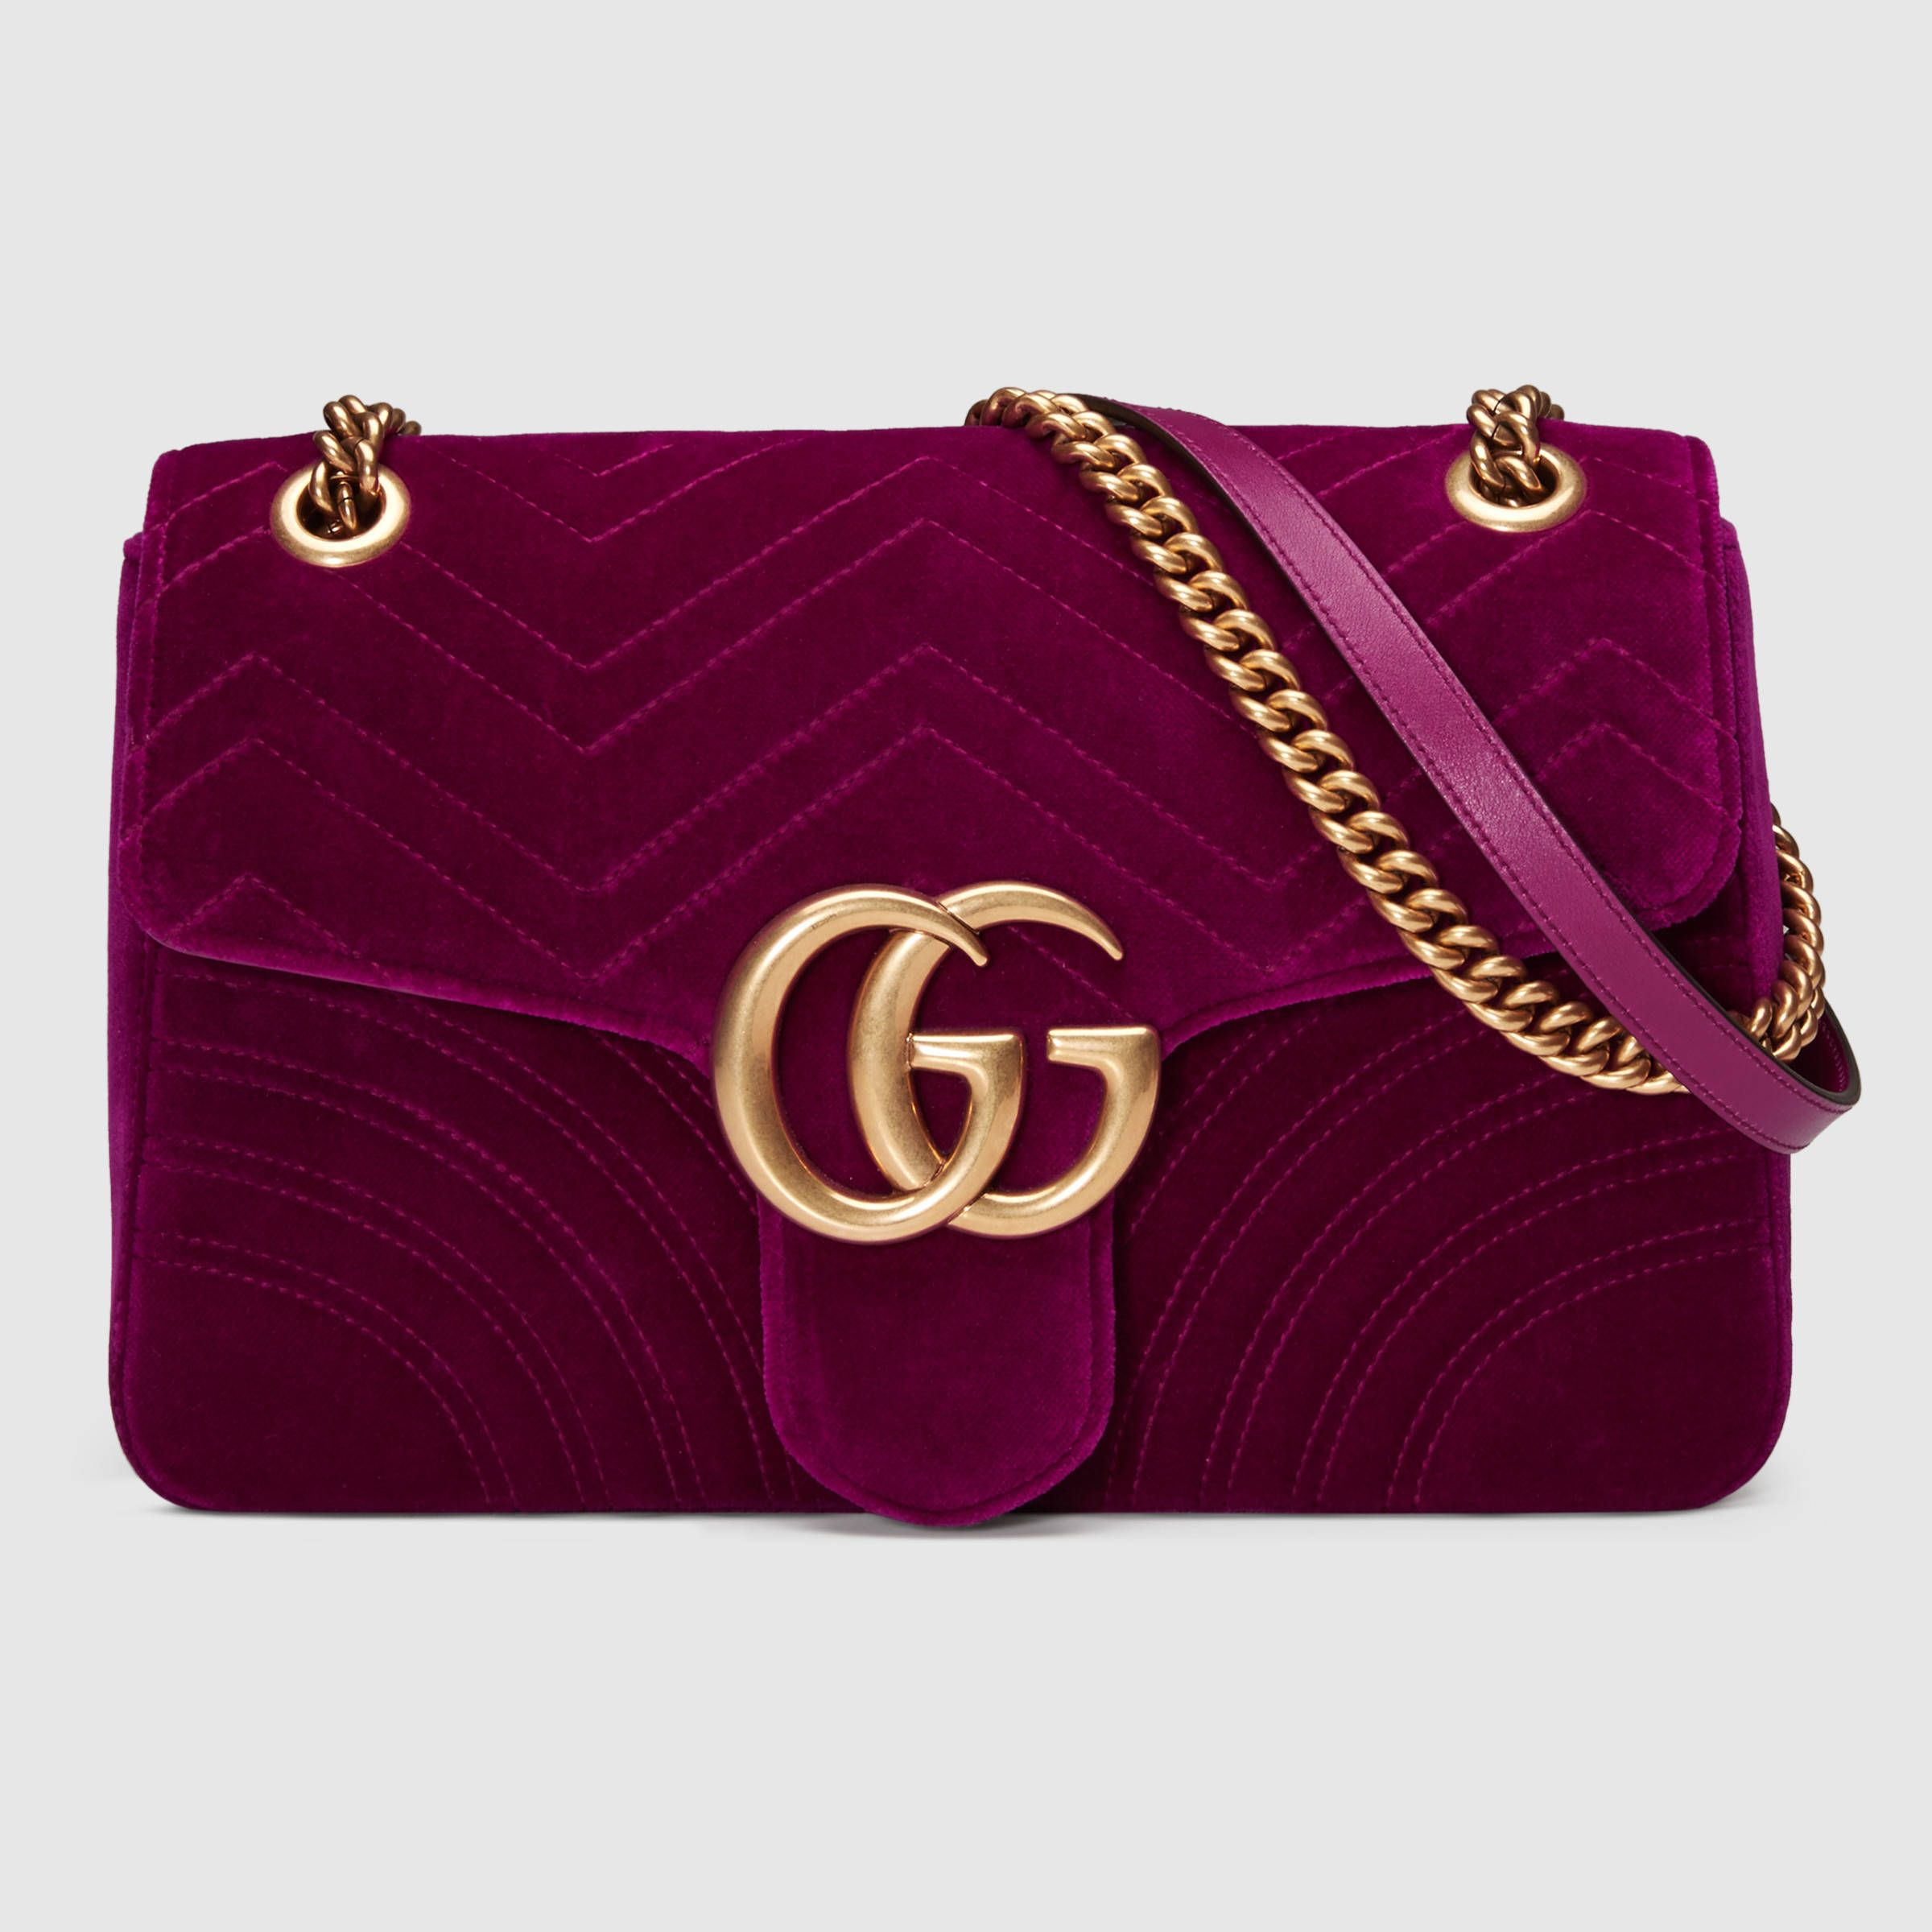 c71acf14d0f Gucci Women - GG Marmont velvet shoulder bag - 443496K4D2T5671 ...